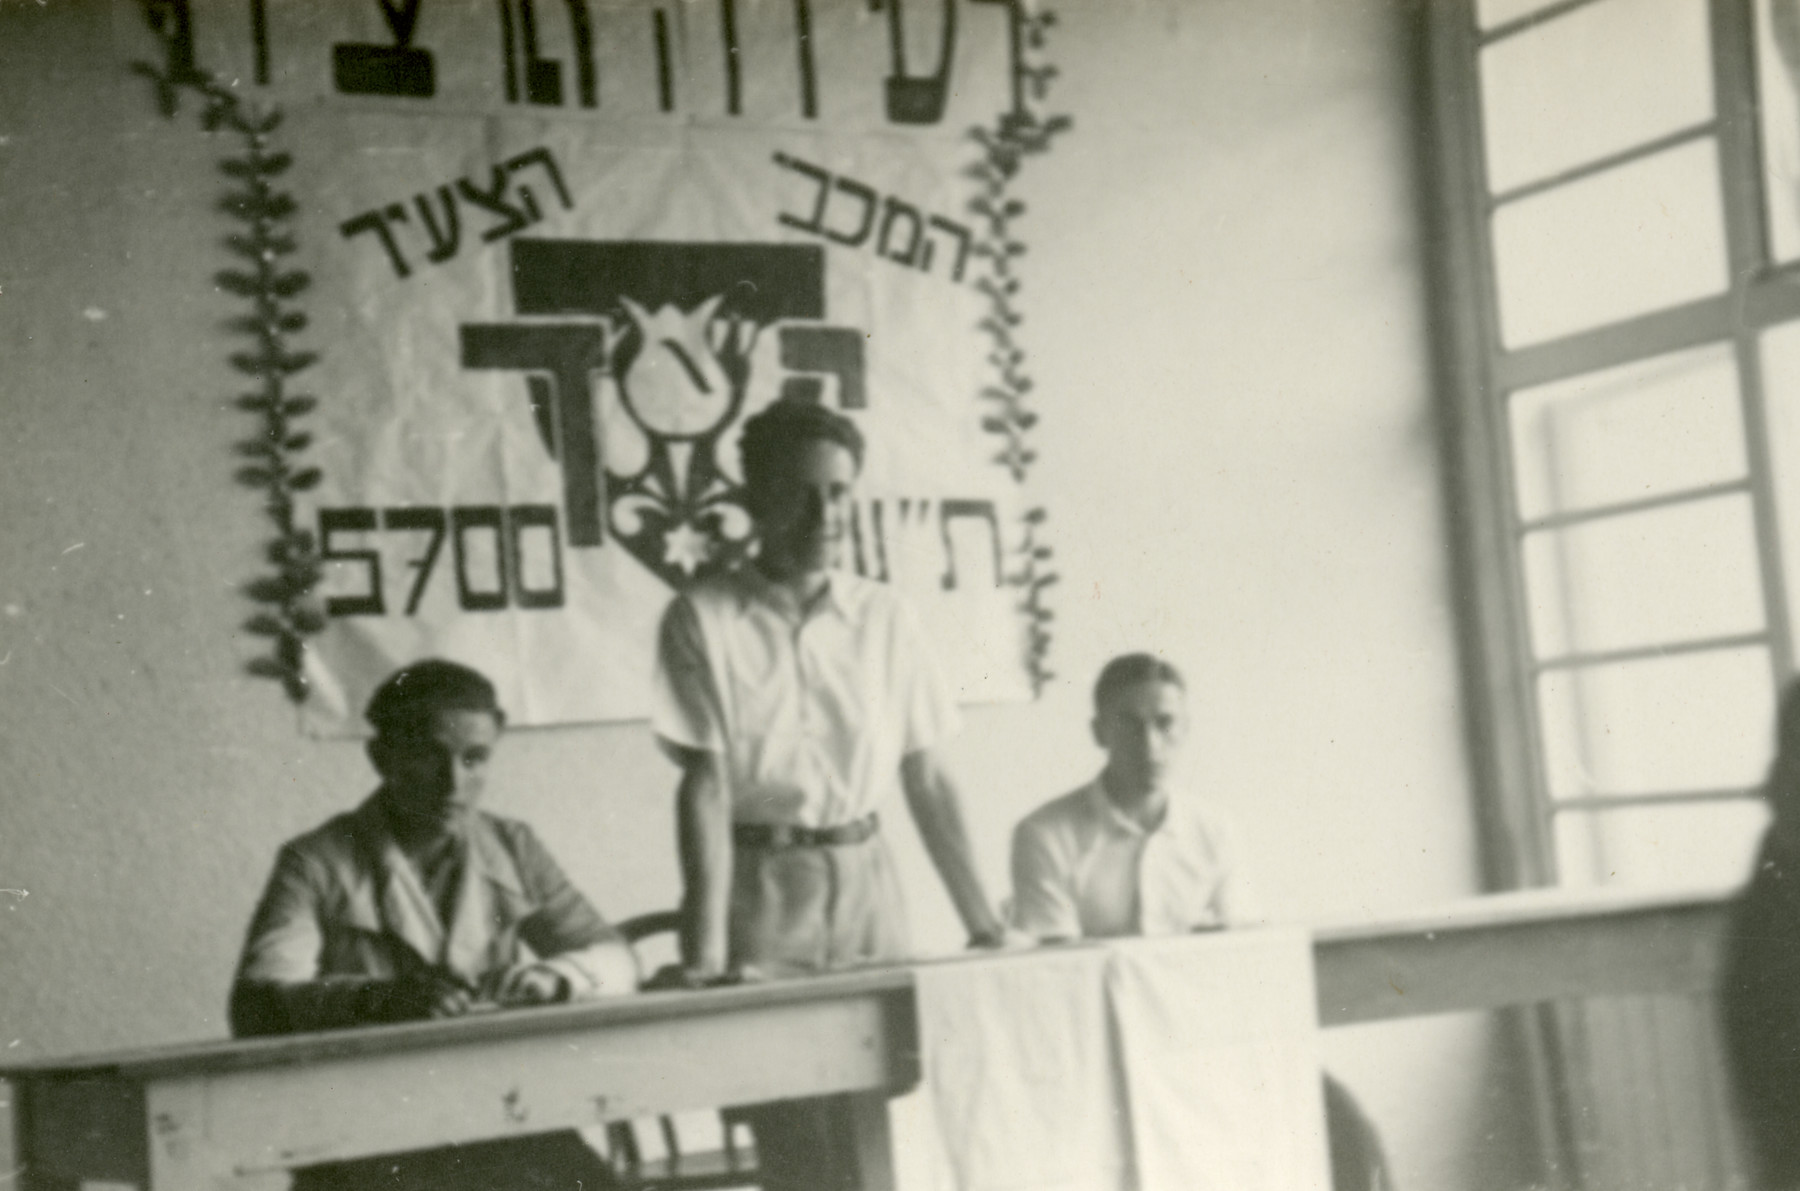 Leaders of the Maccabi team hold an opening ceremony in their summer camp in Czernohorske Kupele.  Pictured from left to right are Peretz Revesz, Eli Sajo and [possibly Josef Berger].